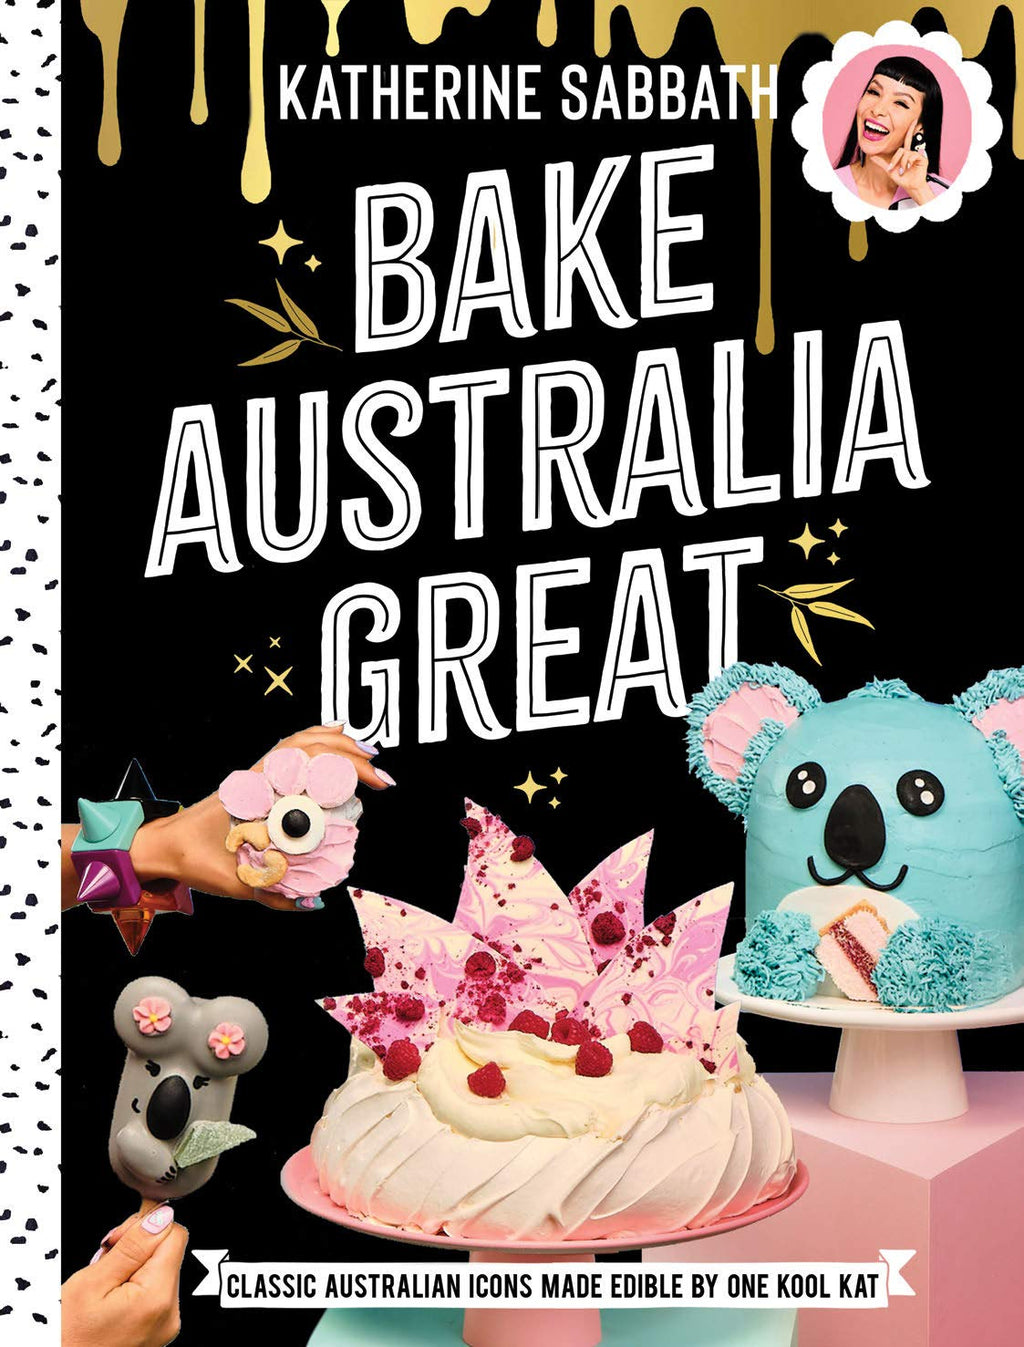 Bake Australia Great: Katherine Sabbath